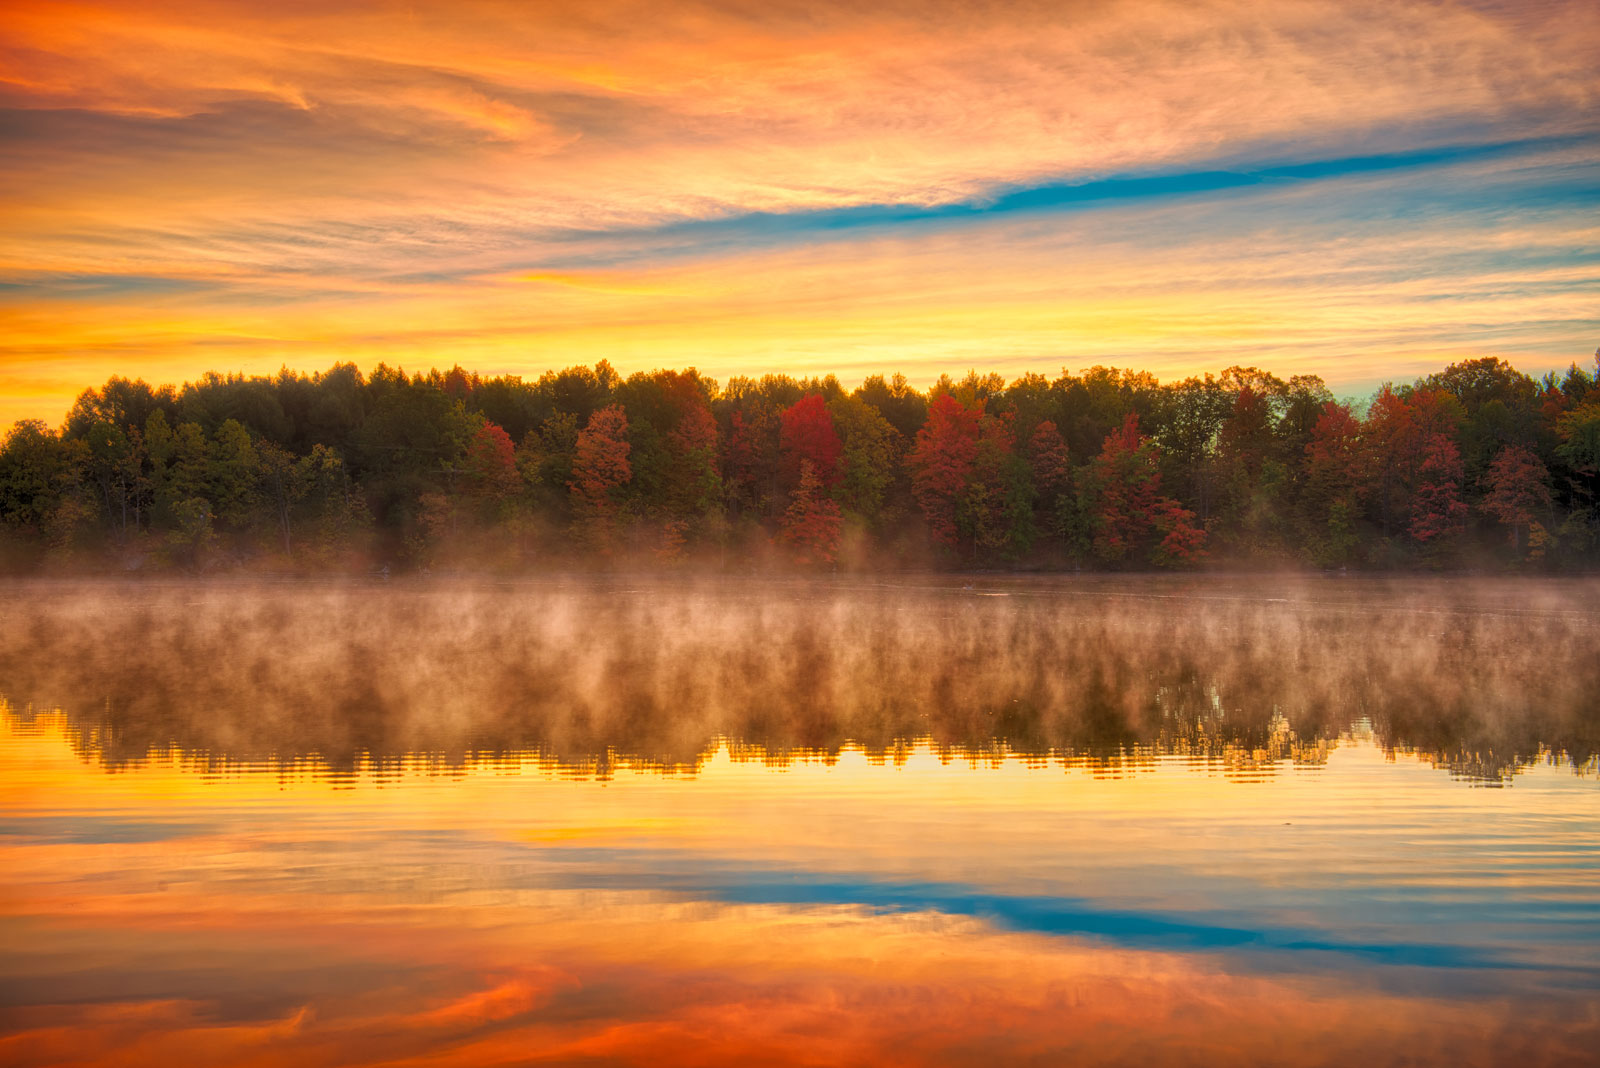 sunrise over misty lake in fall